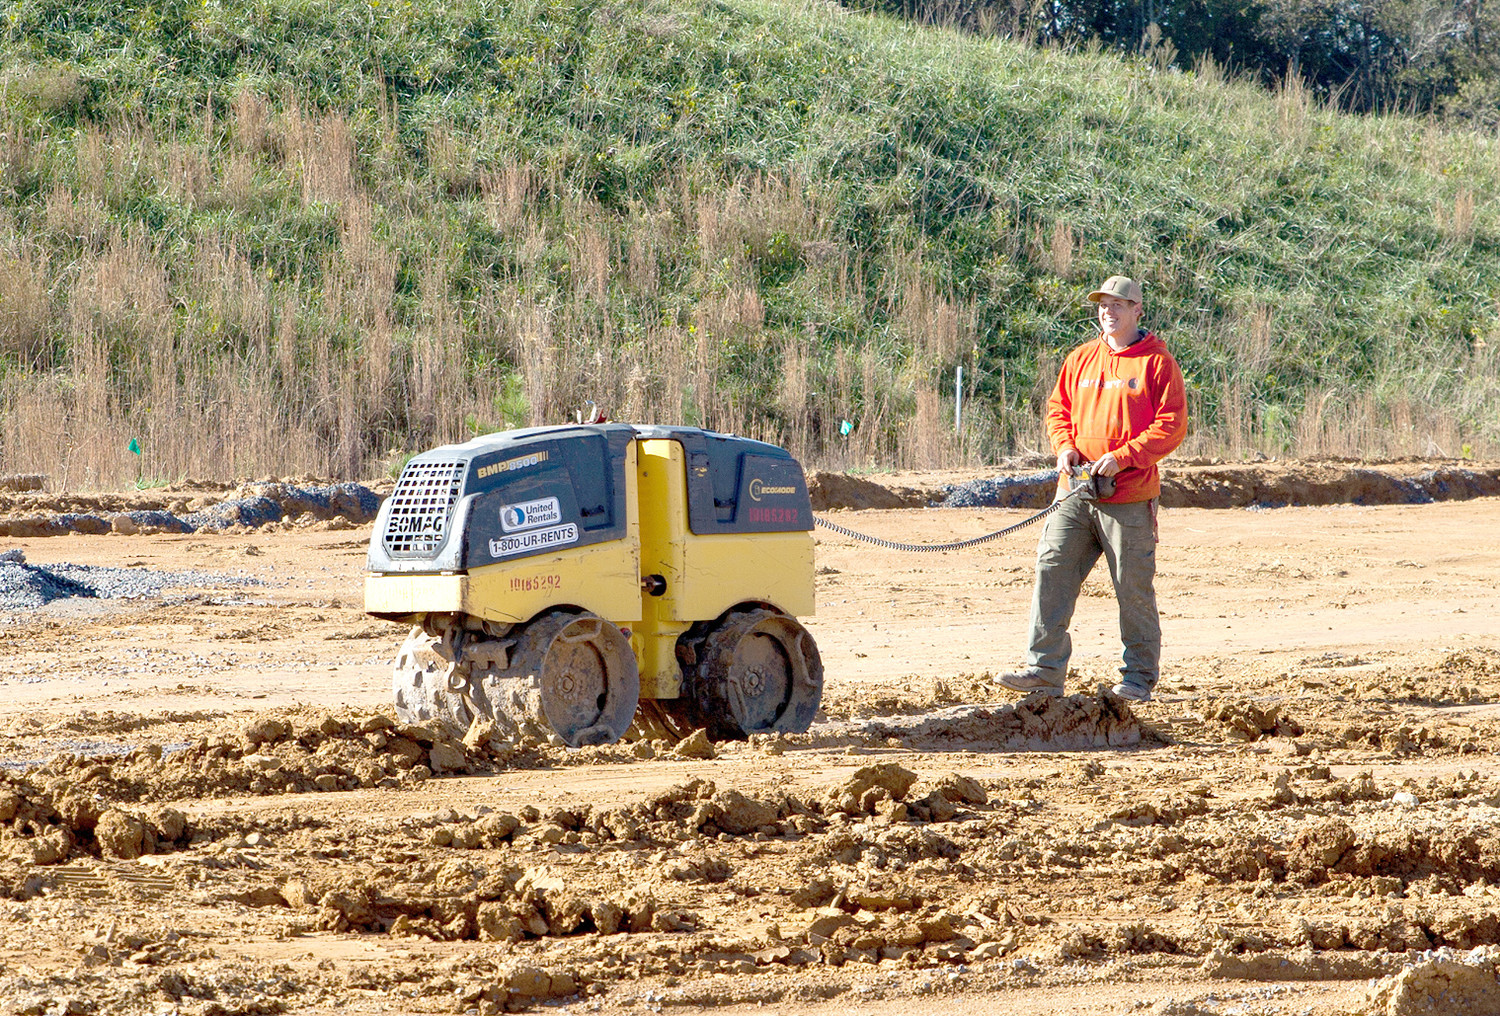 A CONSTRUCTION WORKER uses a remotely operated tool to compact the soil and rock around a newly installed water line at the site of the new Cleveland elementary school.